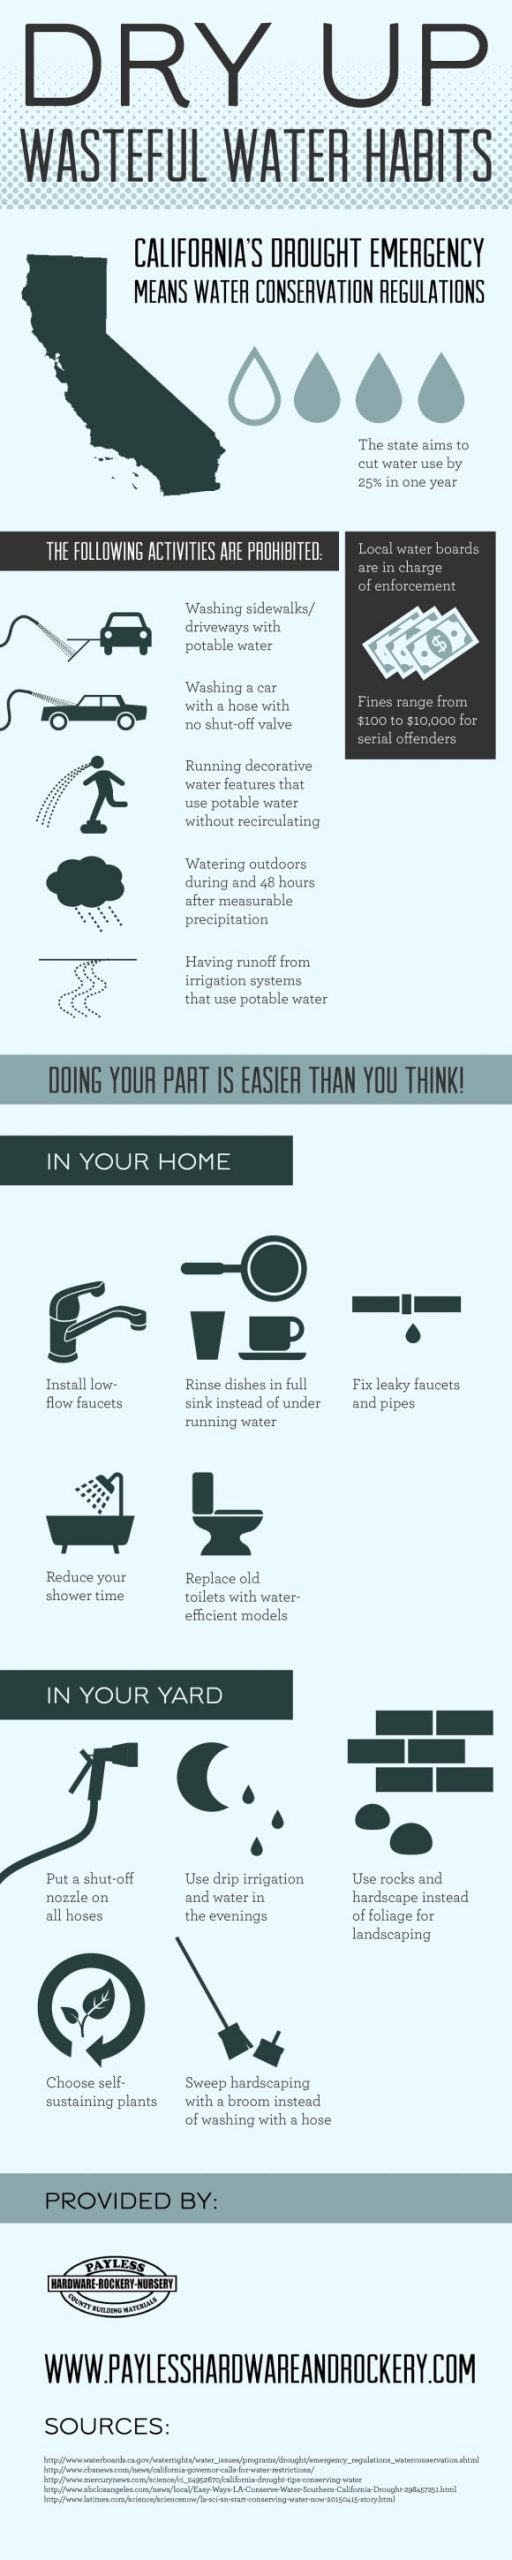 Dry-Up-Wasteful-Water-Habits-Infographic